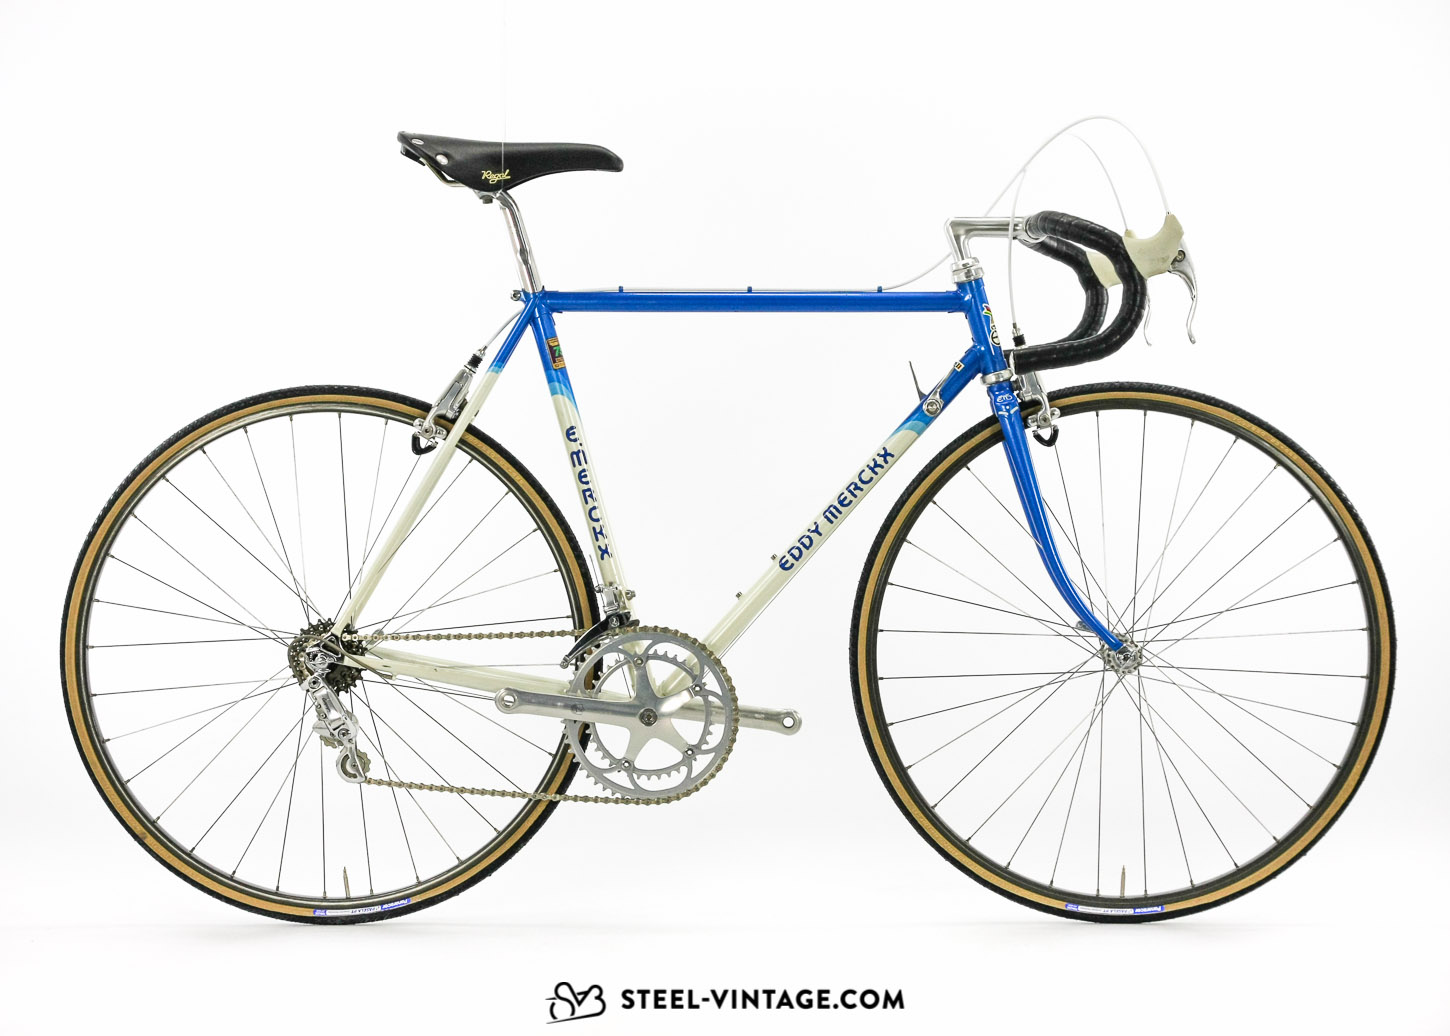 Eddy Merckx Corsa Extra 753 Panasonic Classic Road Bike